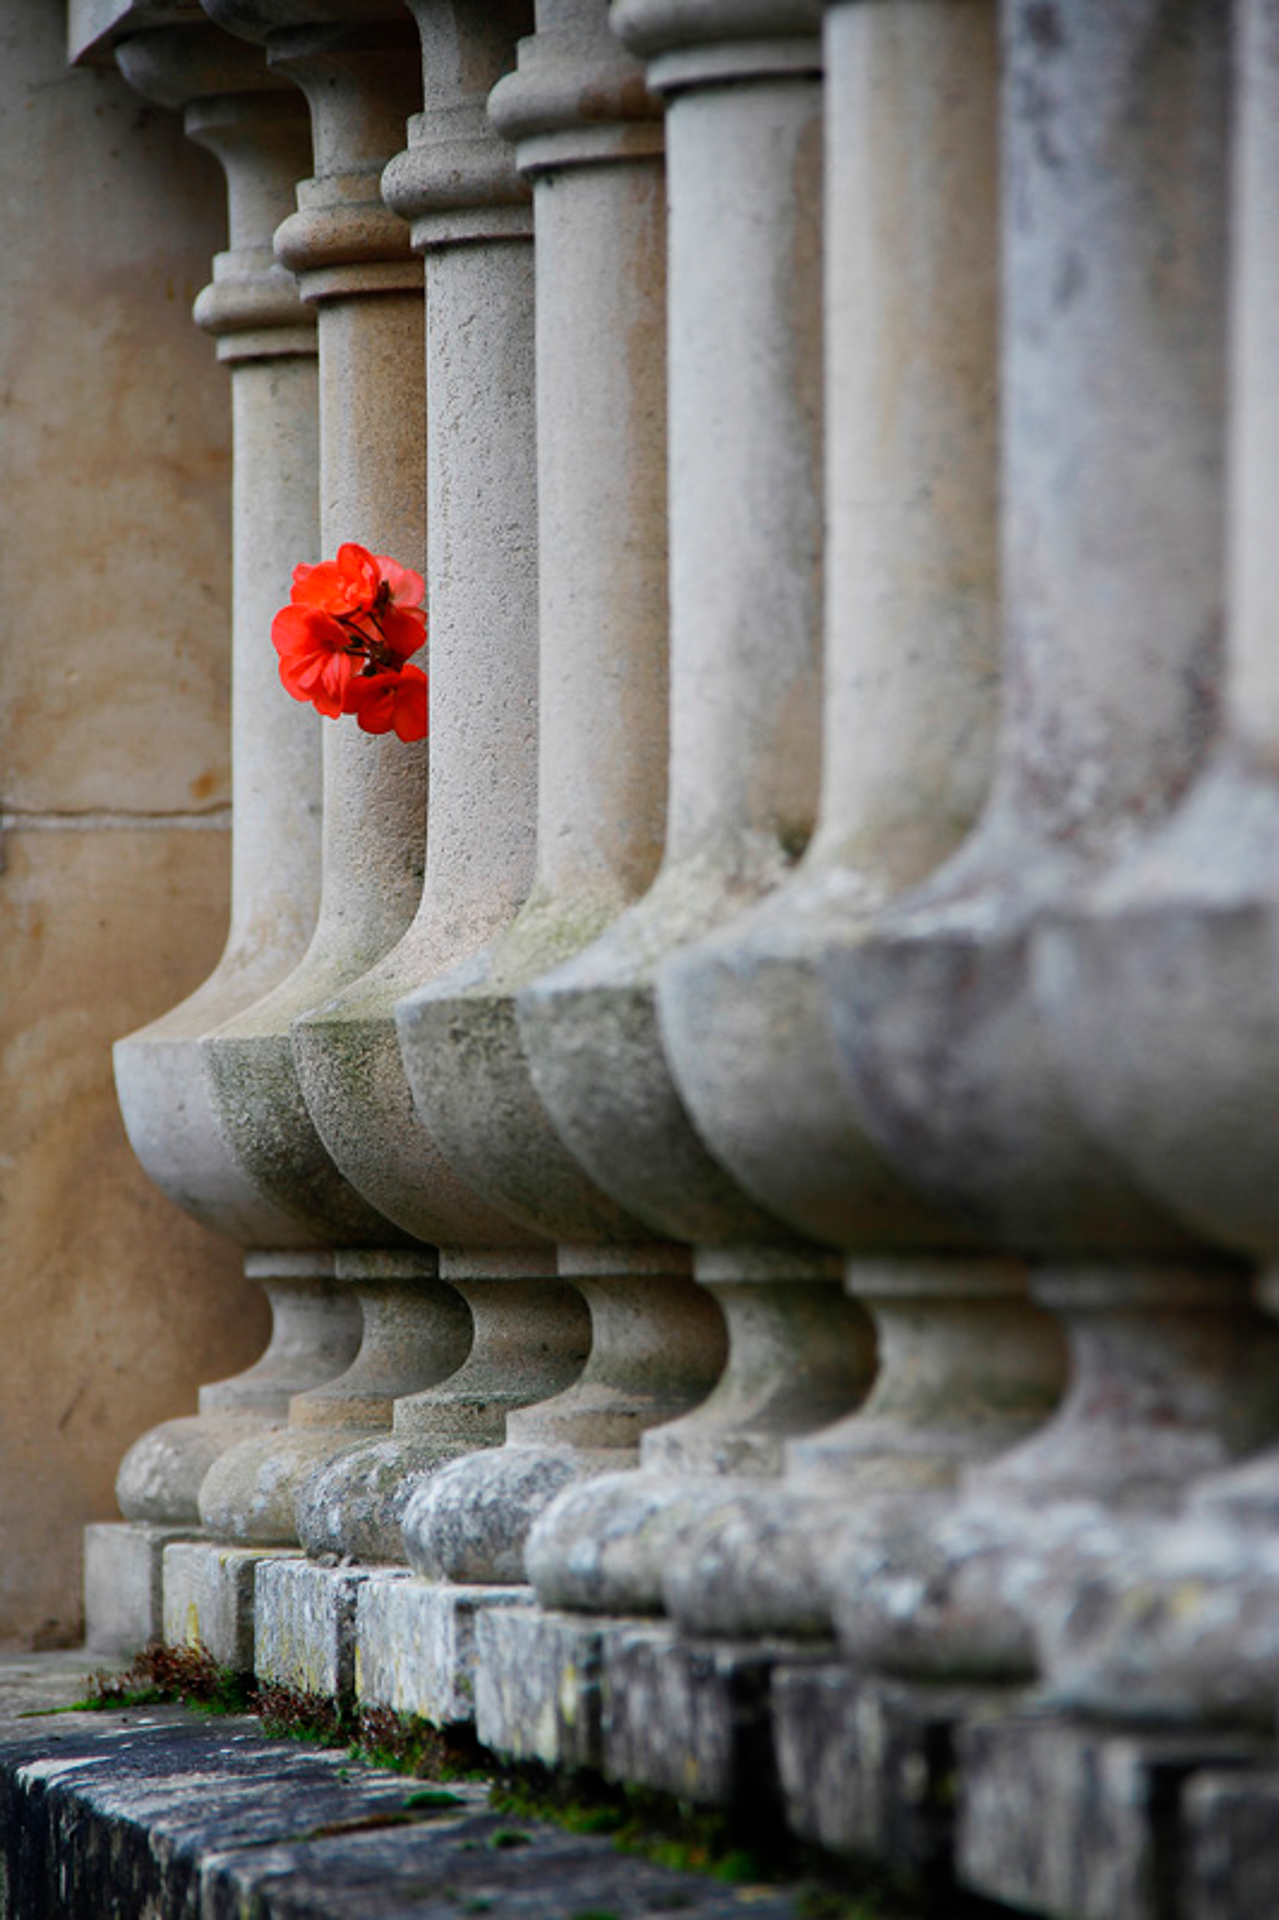 An arty farty colour image of a red Geranium as it pokes out inbetween a row of small rounded concrete balustrades that form a balcony.